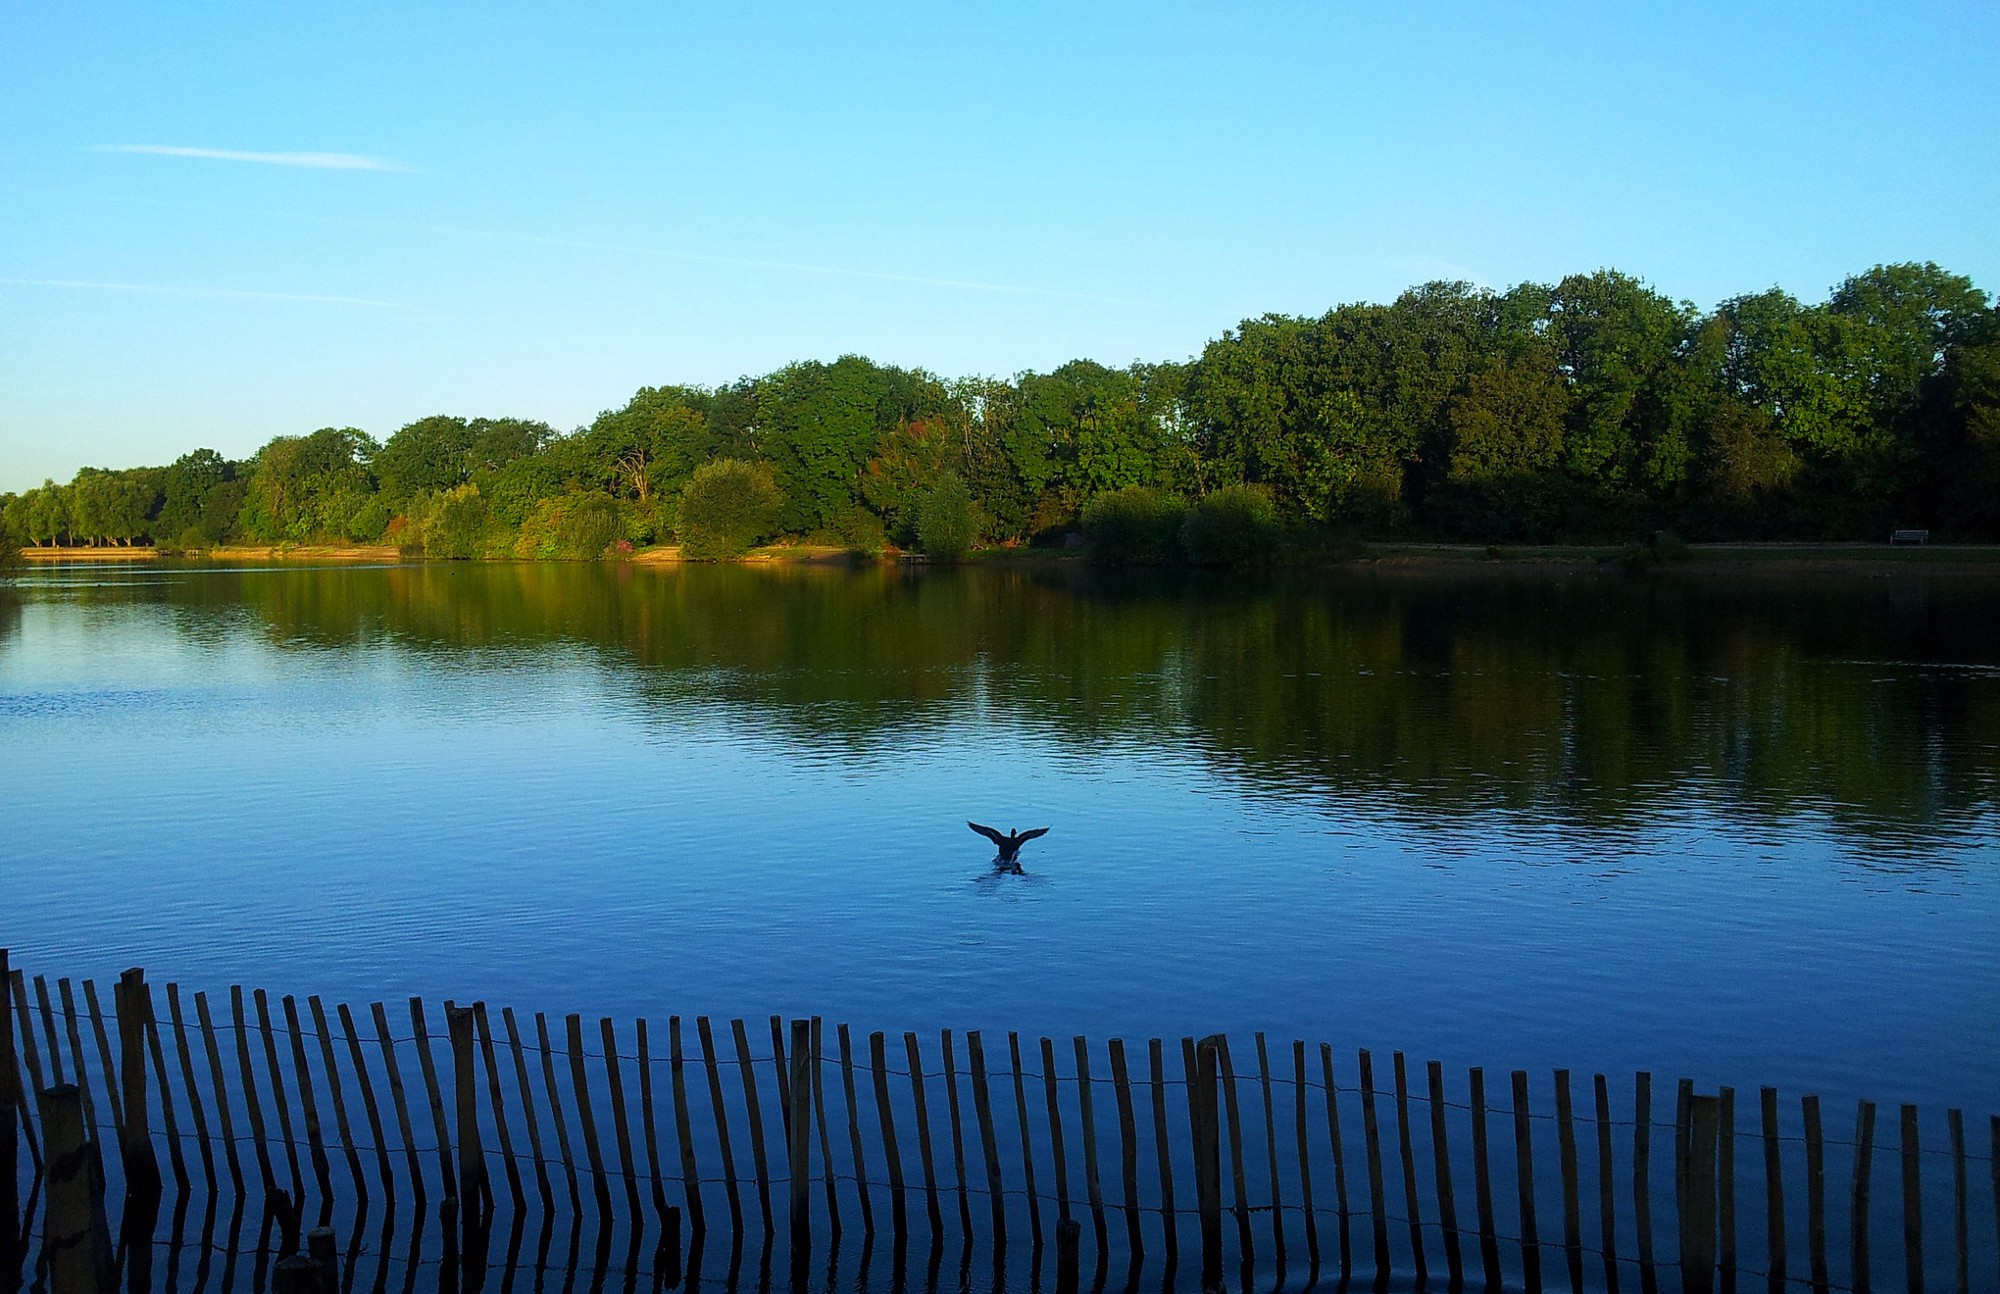 A duck fliying low over a lake at dawn on a beautiful summer's day, escaping from a fence on the lake's edge